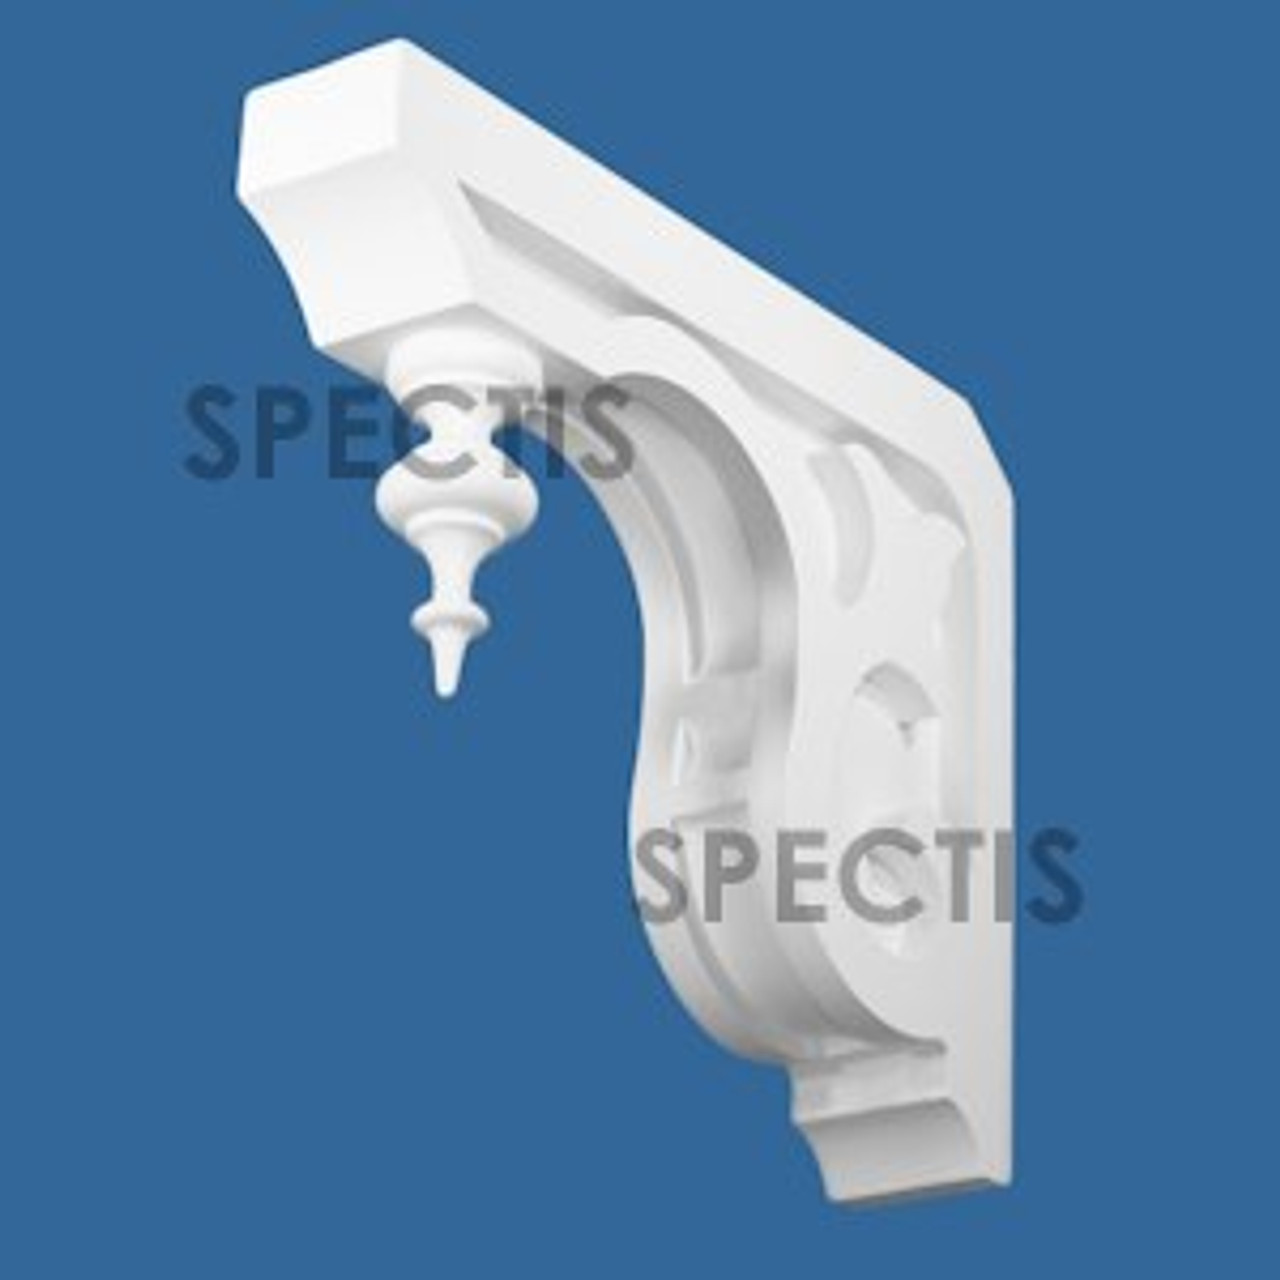 """BL2990 Spectis Eave Block or Bracket 3.19""""W x 14""""H x 17.13"""" Projection"""